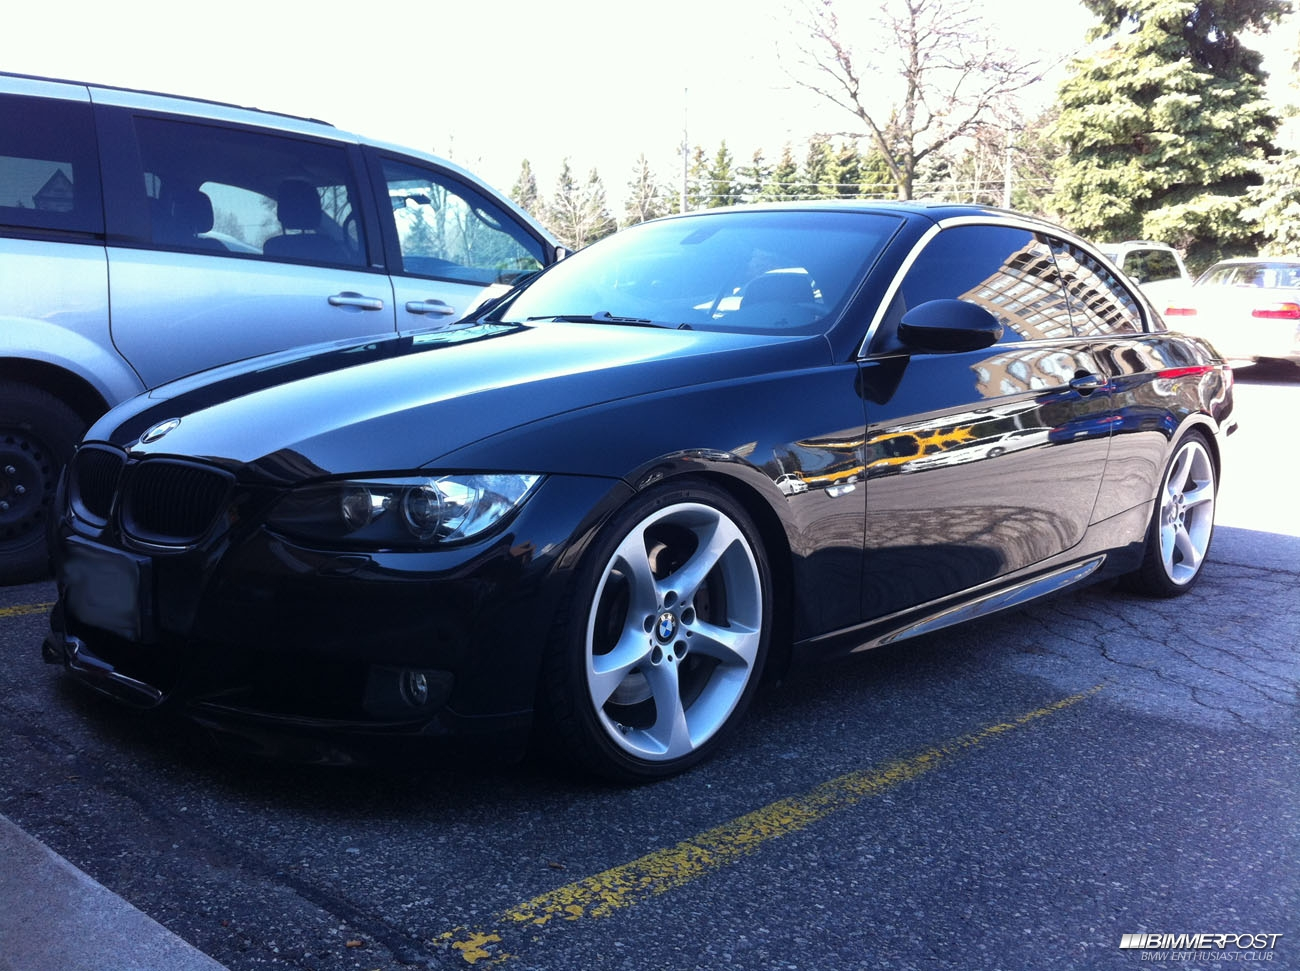 E93black S E93 Bmw 335i Bimmerpost Garage